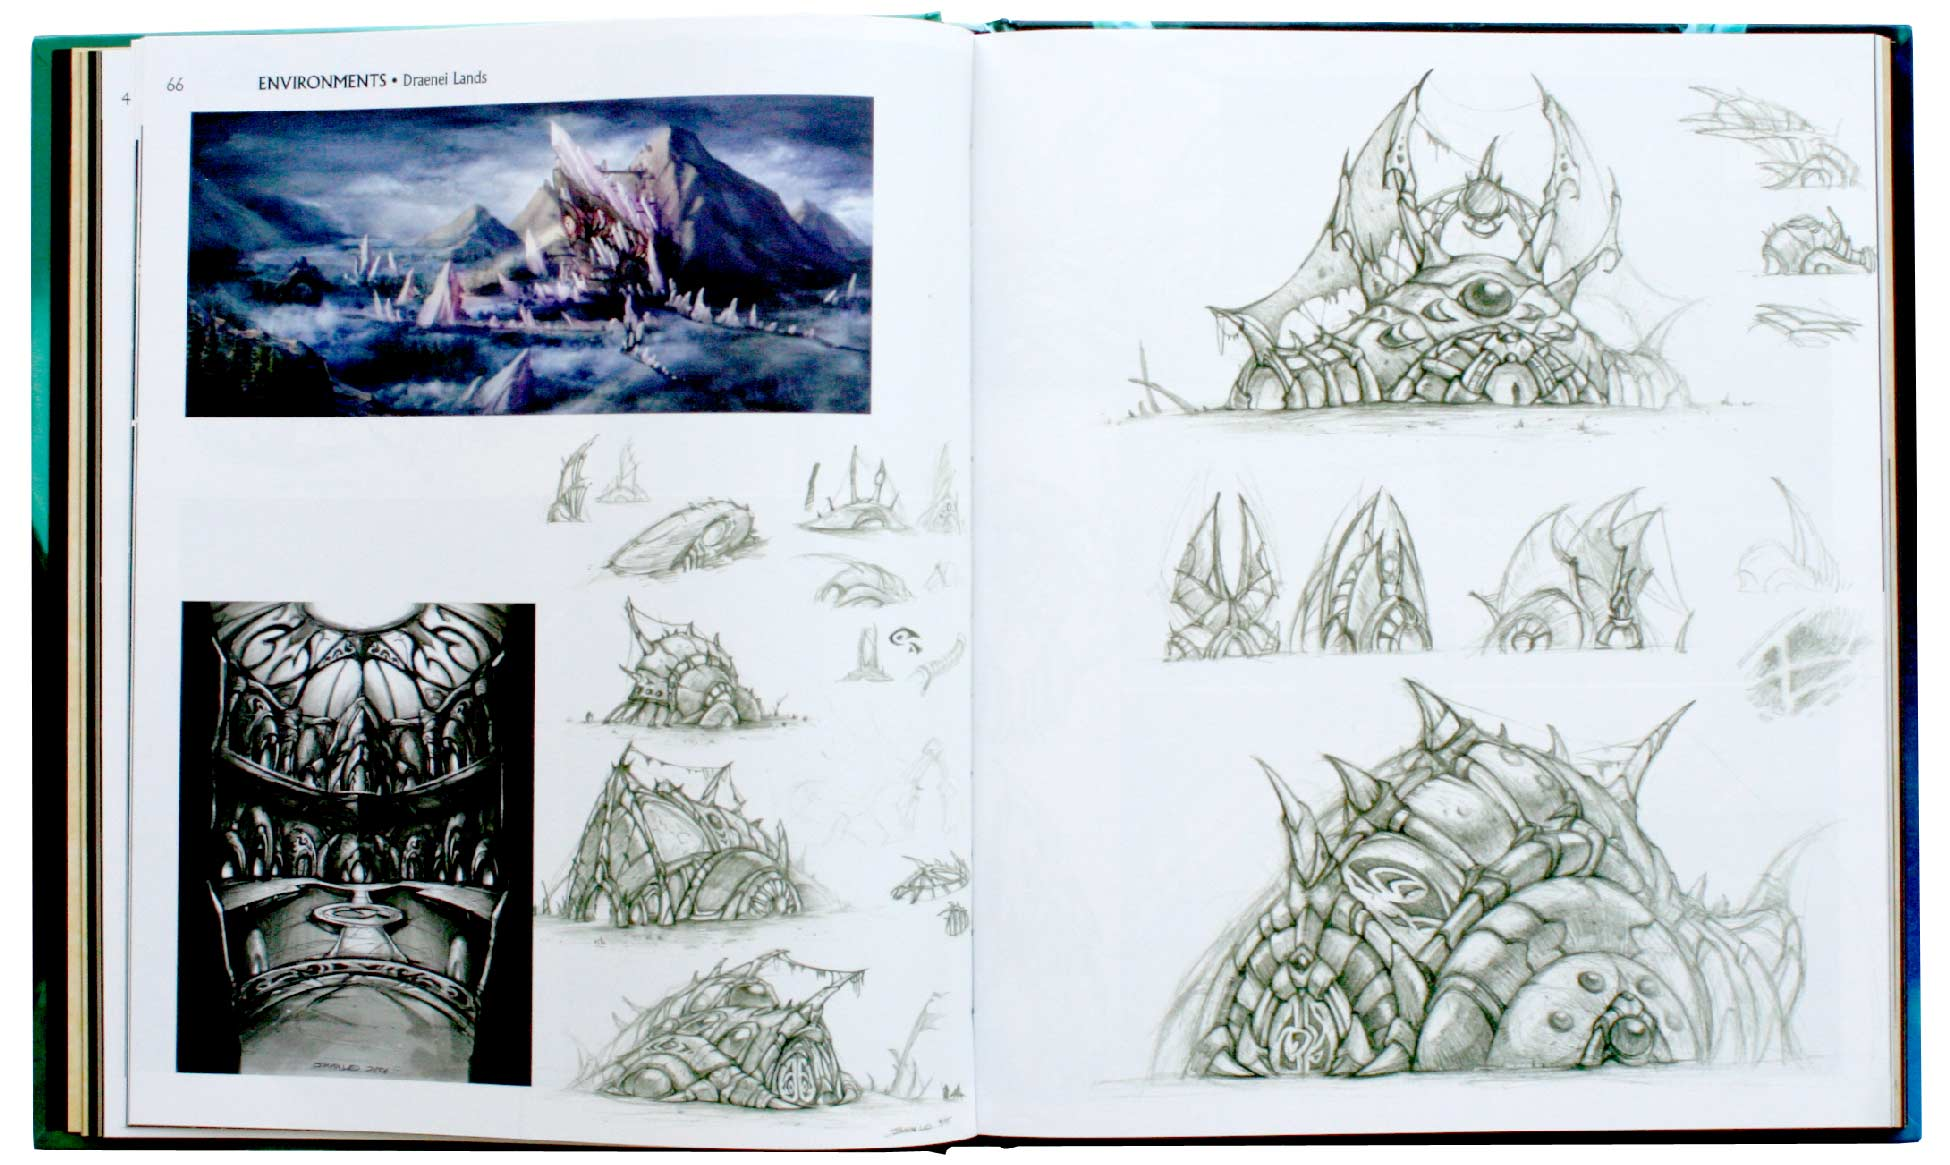 Page 66 et 67 de l'Art book : The Art of the Burning Crusade (World of Warcraft)